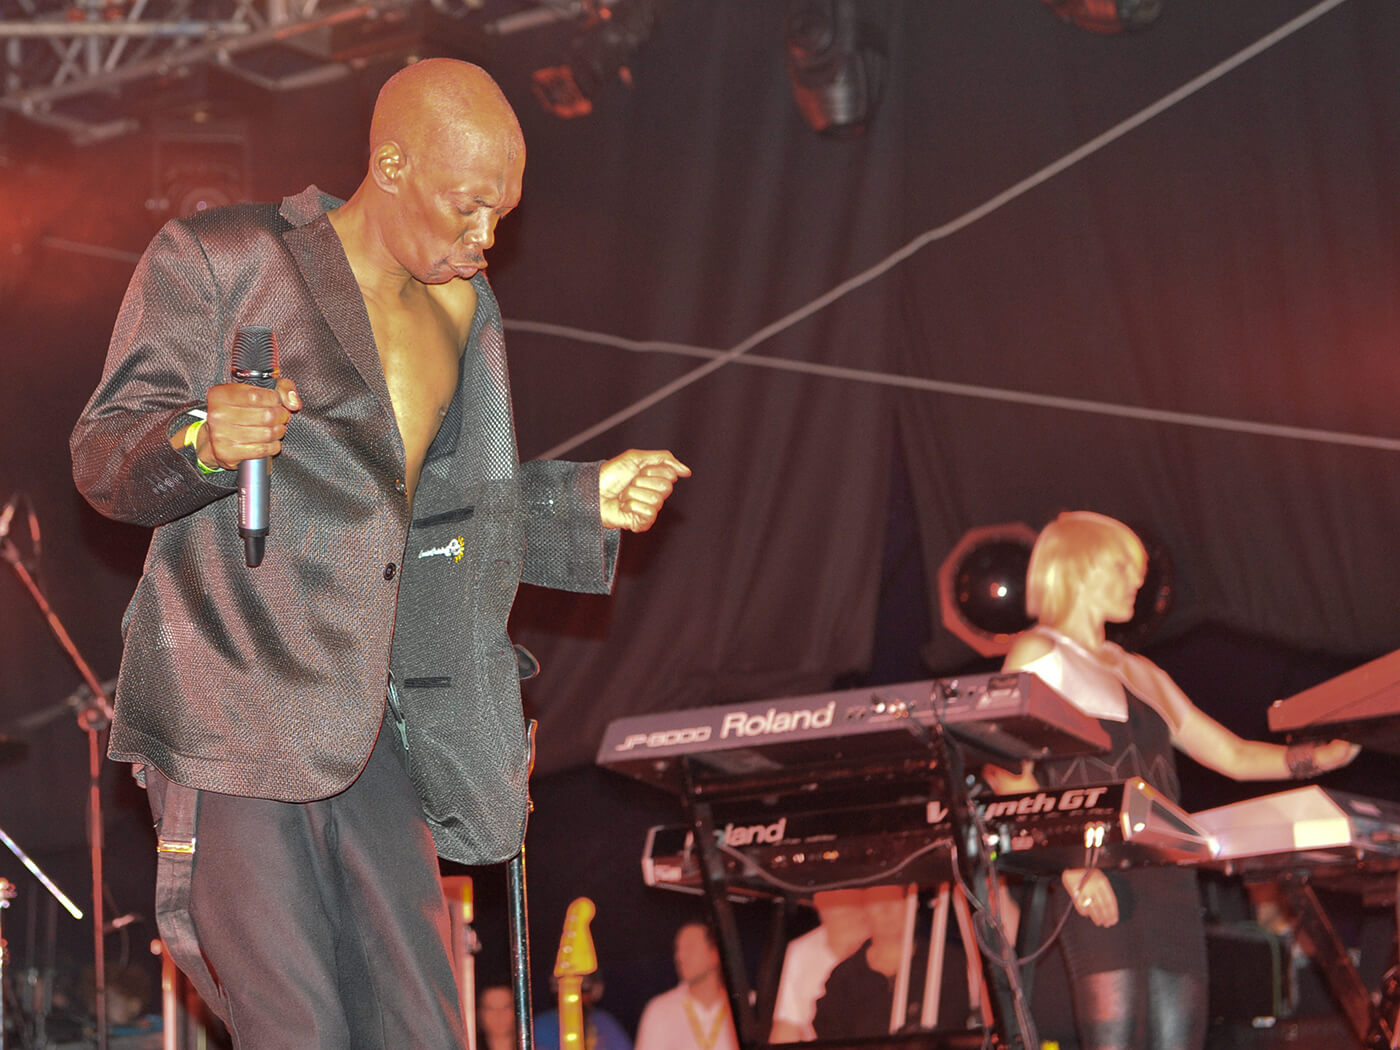 Faithless's Sister Bliss's JP-8000 is a solid fixture of the band's setup